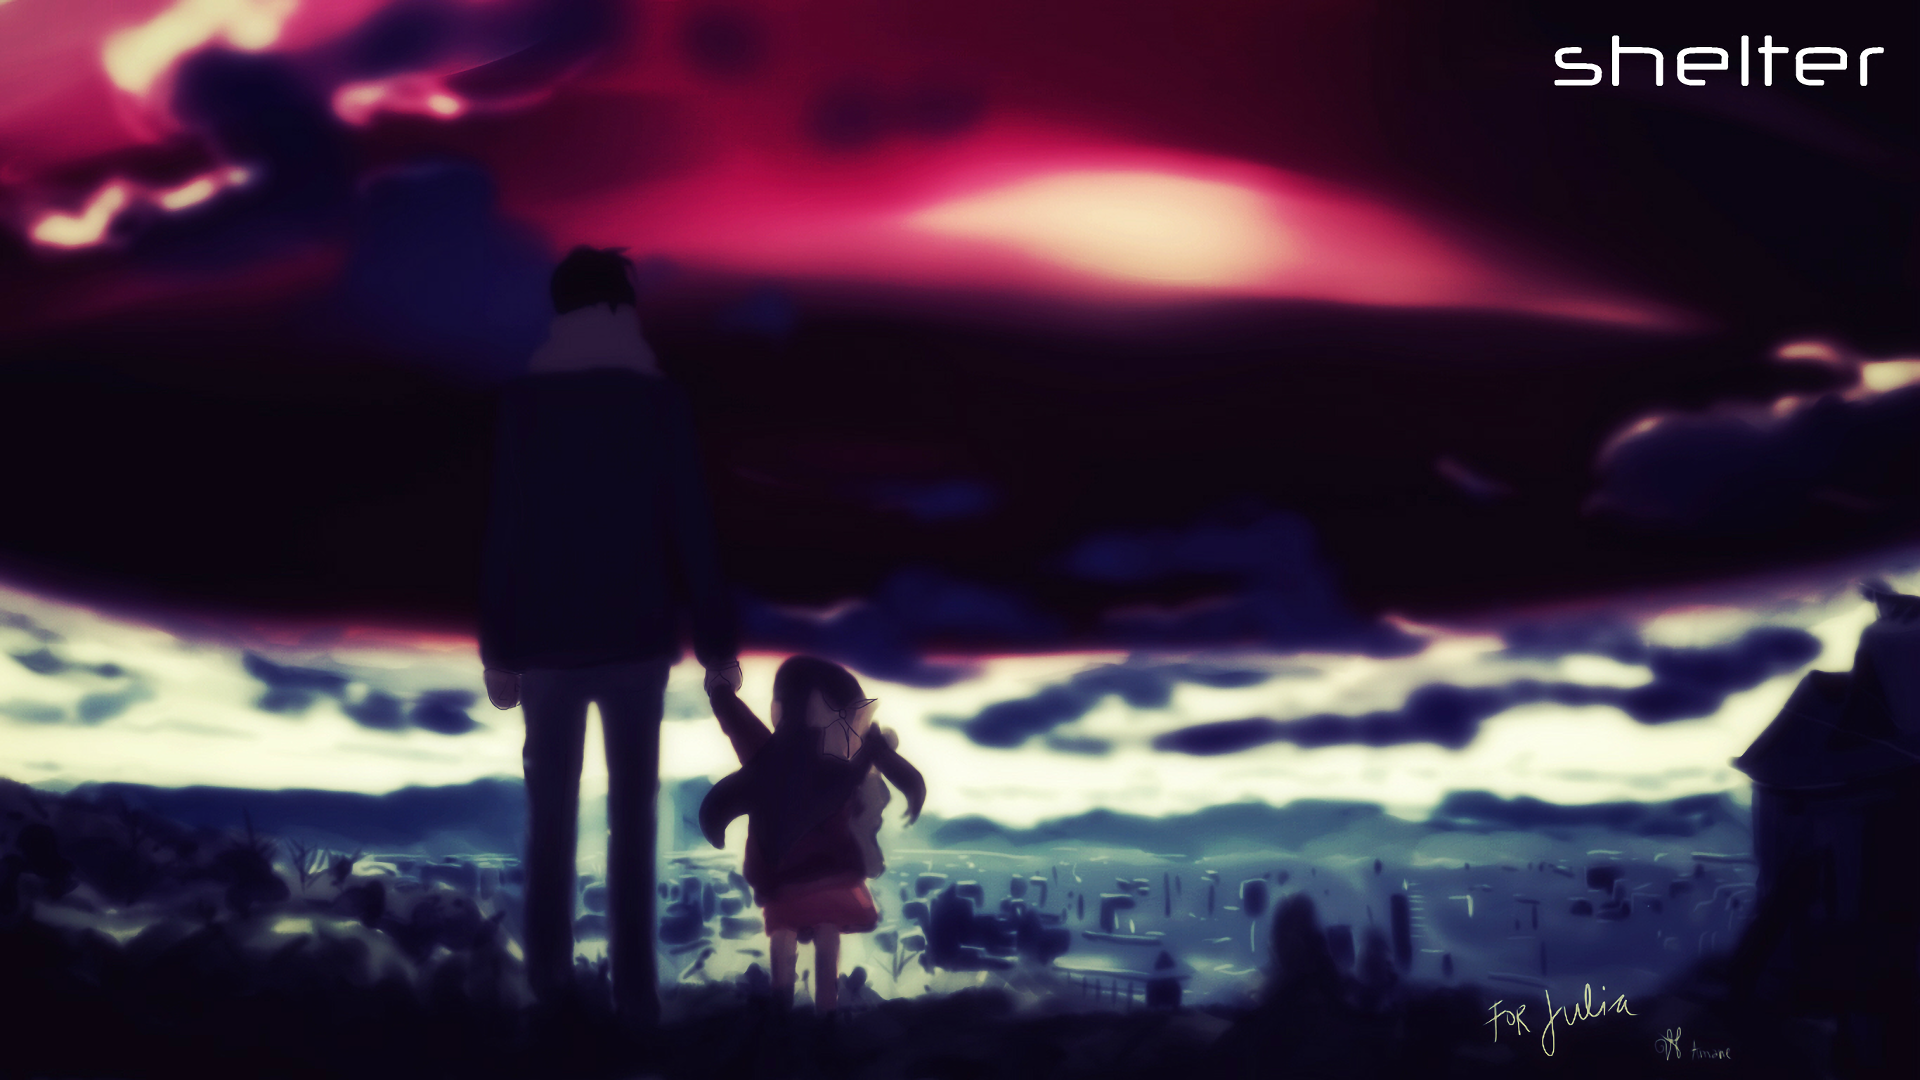 shelter wallpapers  pictures  images